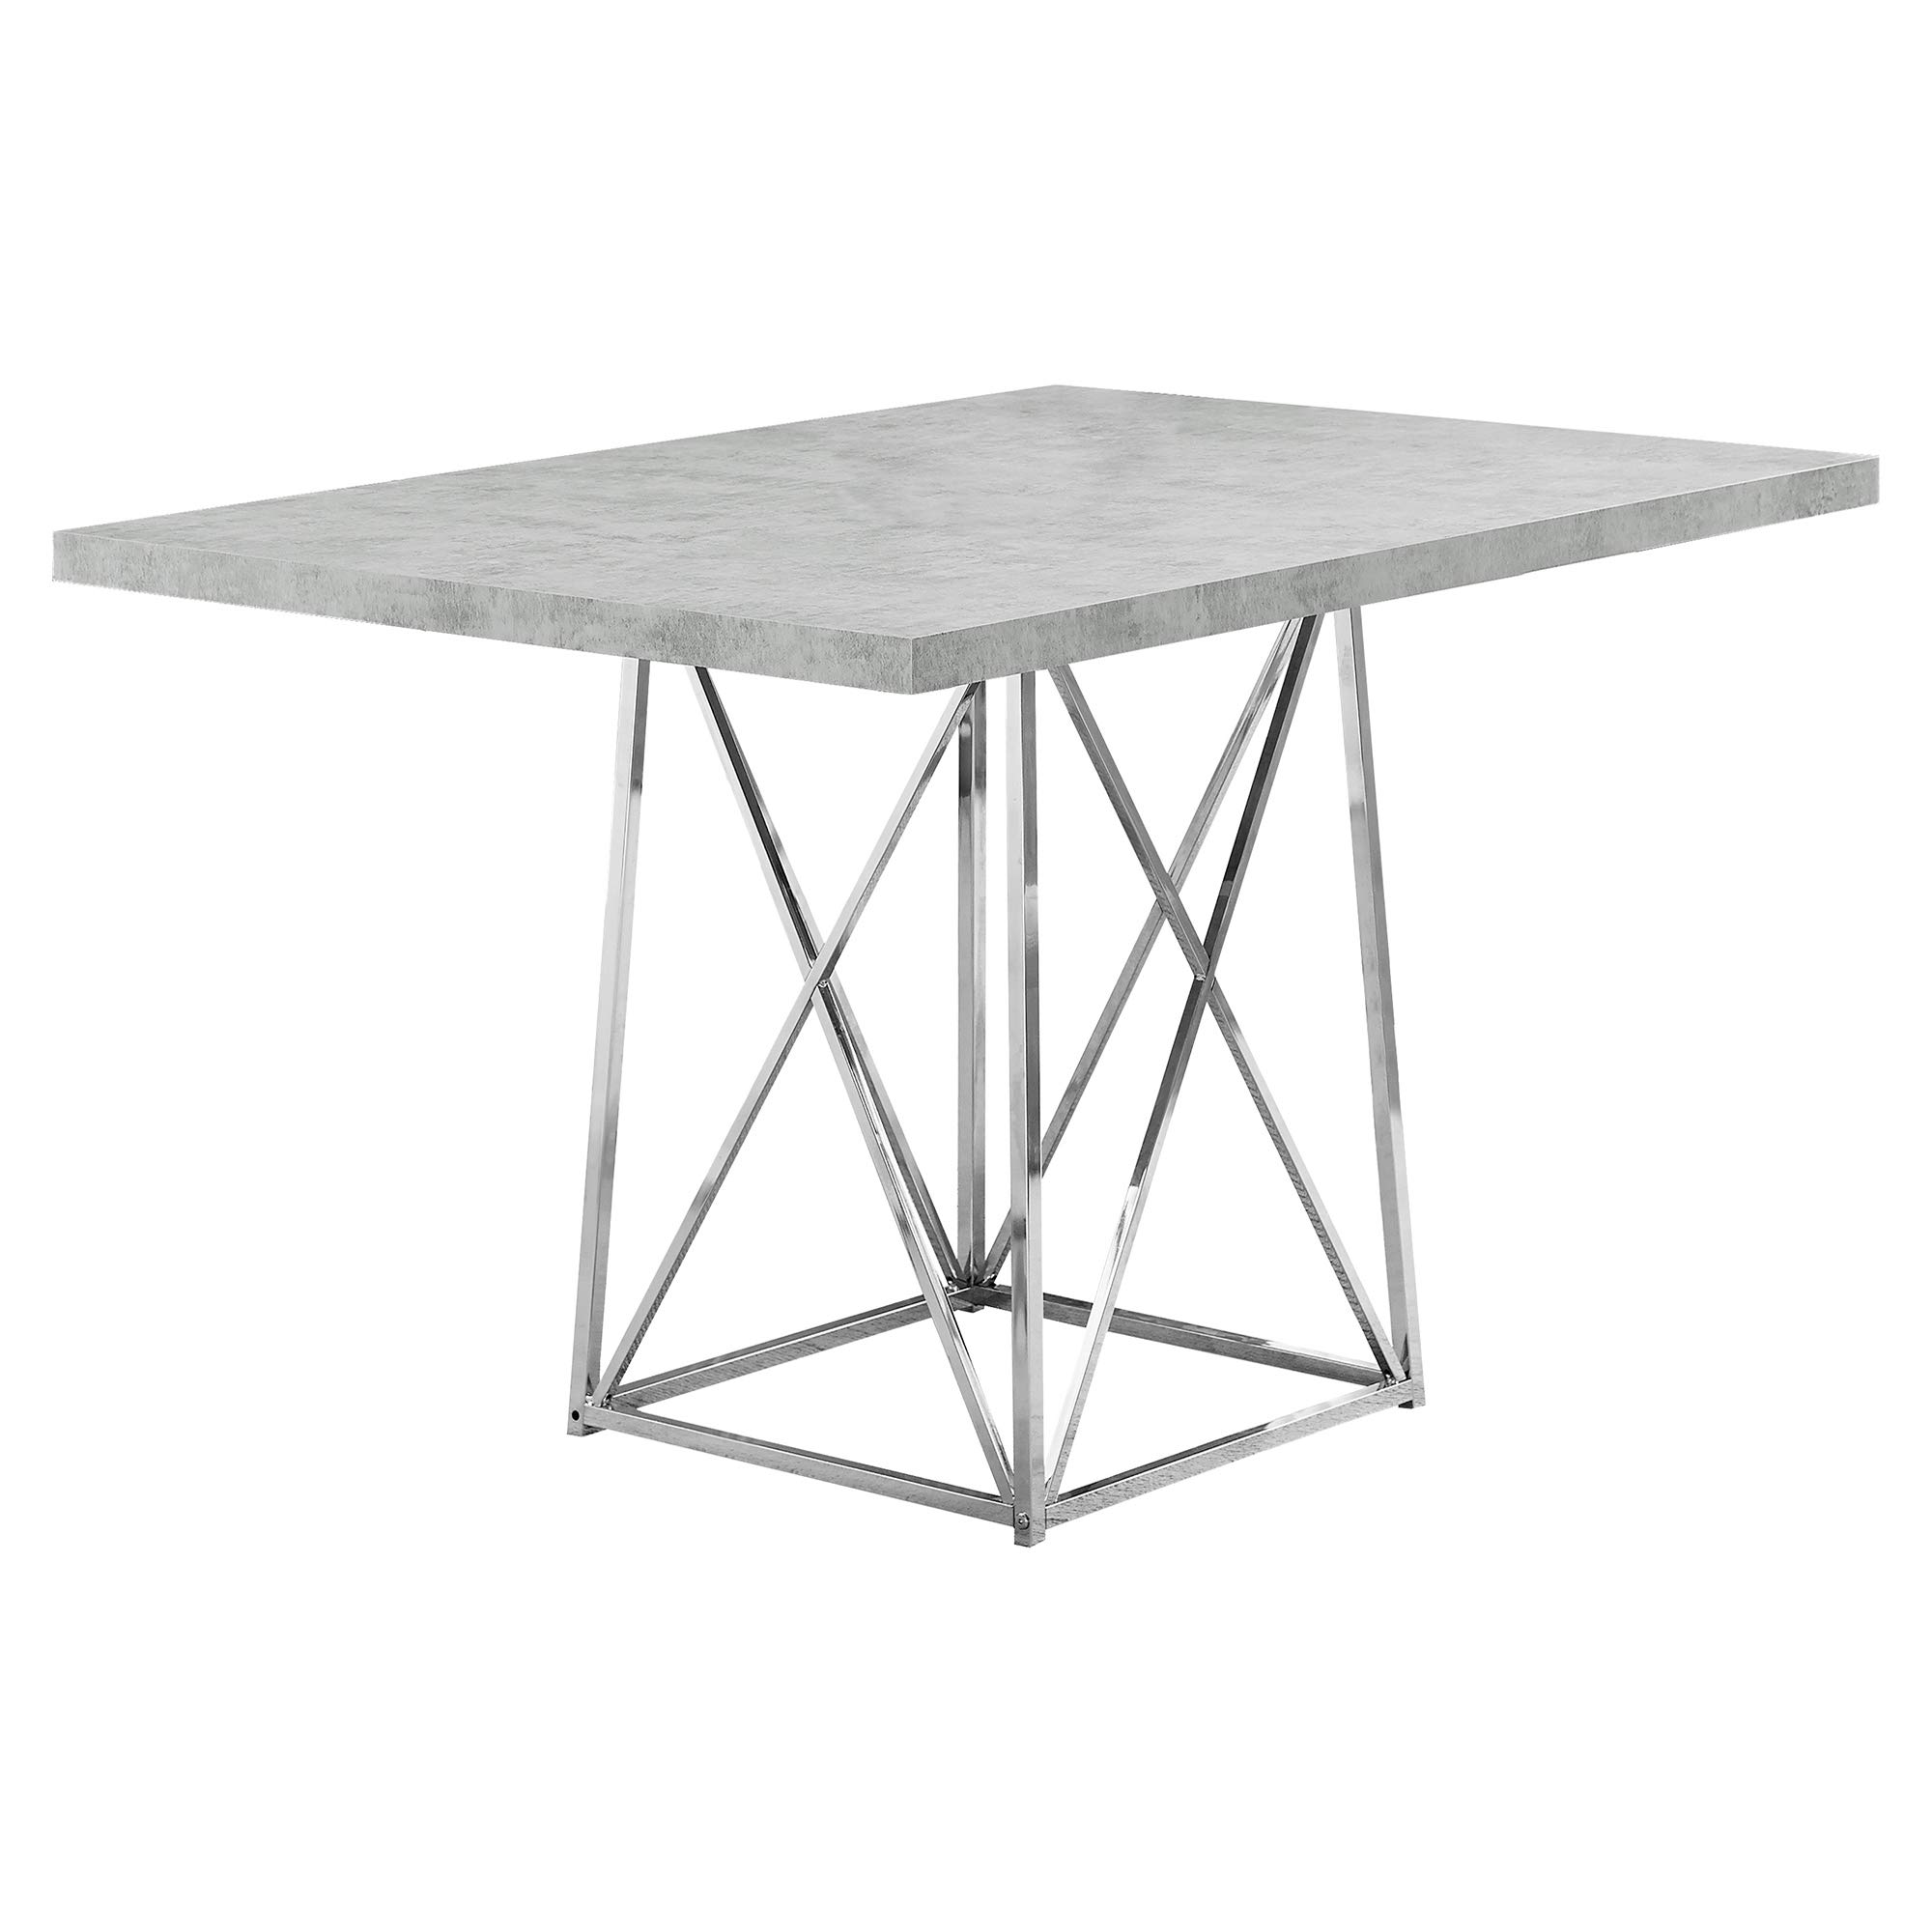 Monarch Specialties I I 1043 Dining Table Metal Base, 36'' x 48'', Grey Cement/Chrome by Monarch Specialties